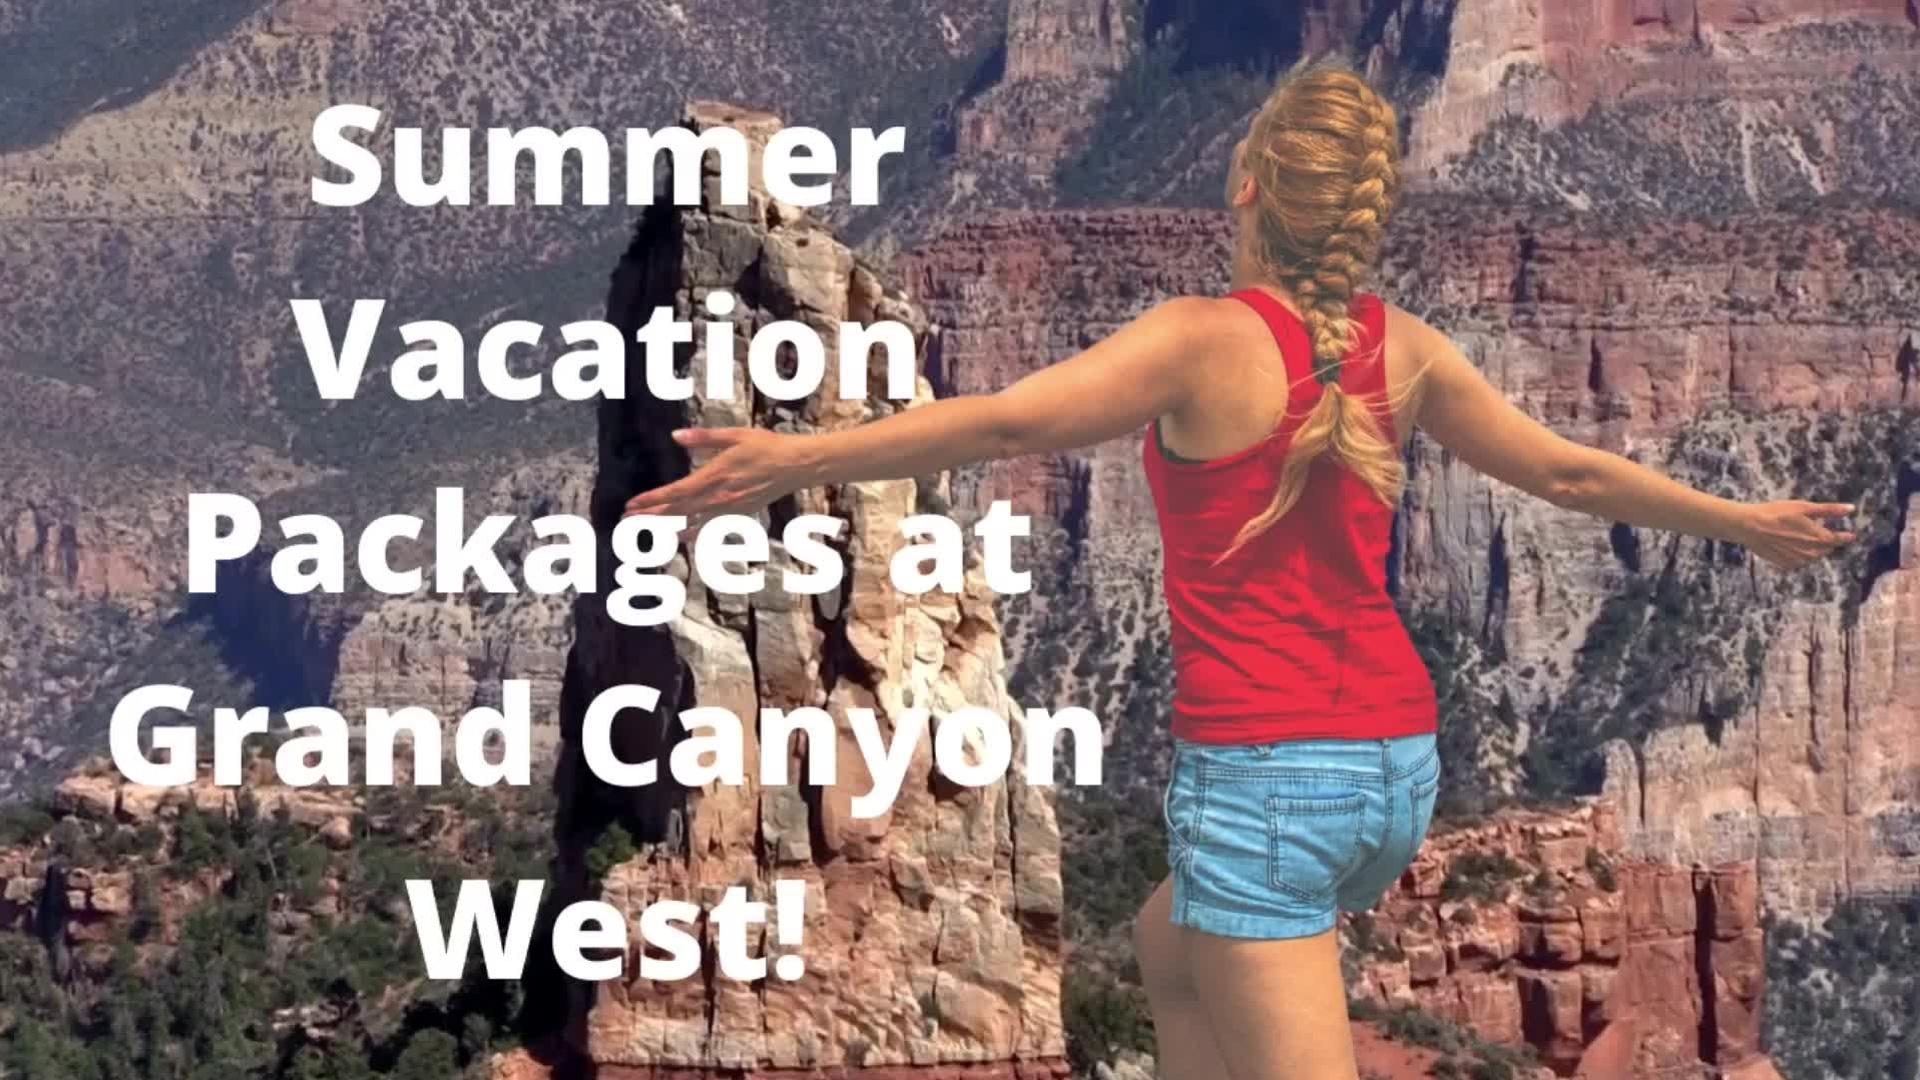 Grand Canyon West Summer Vacation PaCKAGES